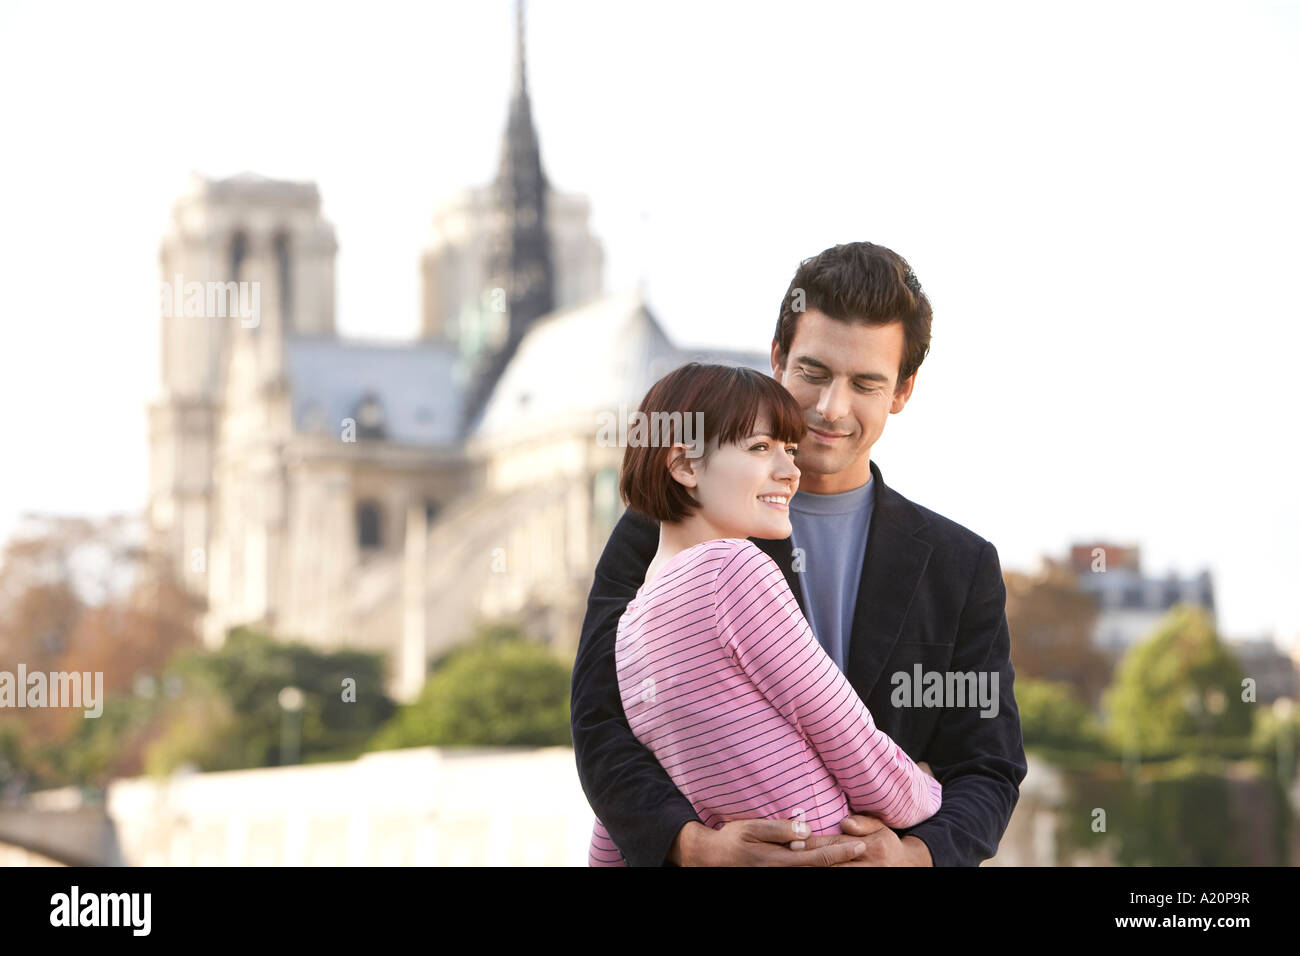 Paris, France, Couple embracing in front of Notre Dame Cathedral - Stock Image